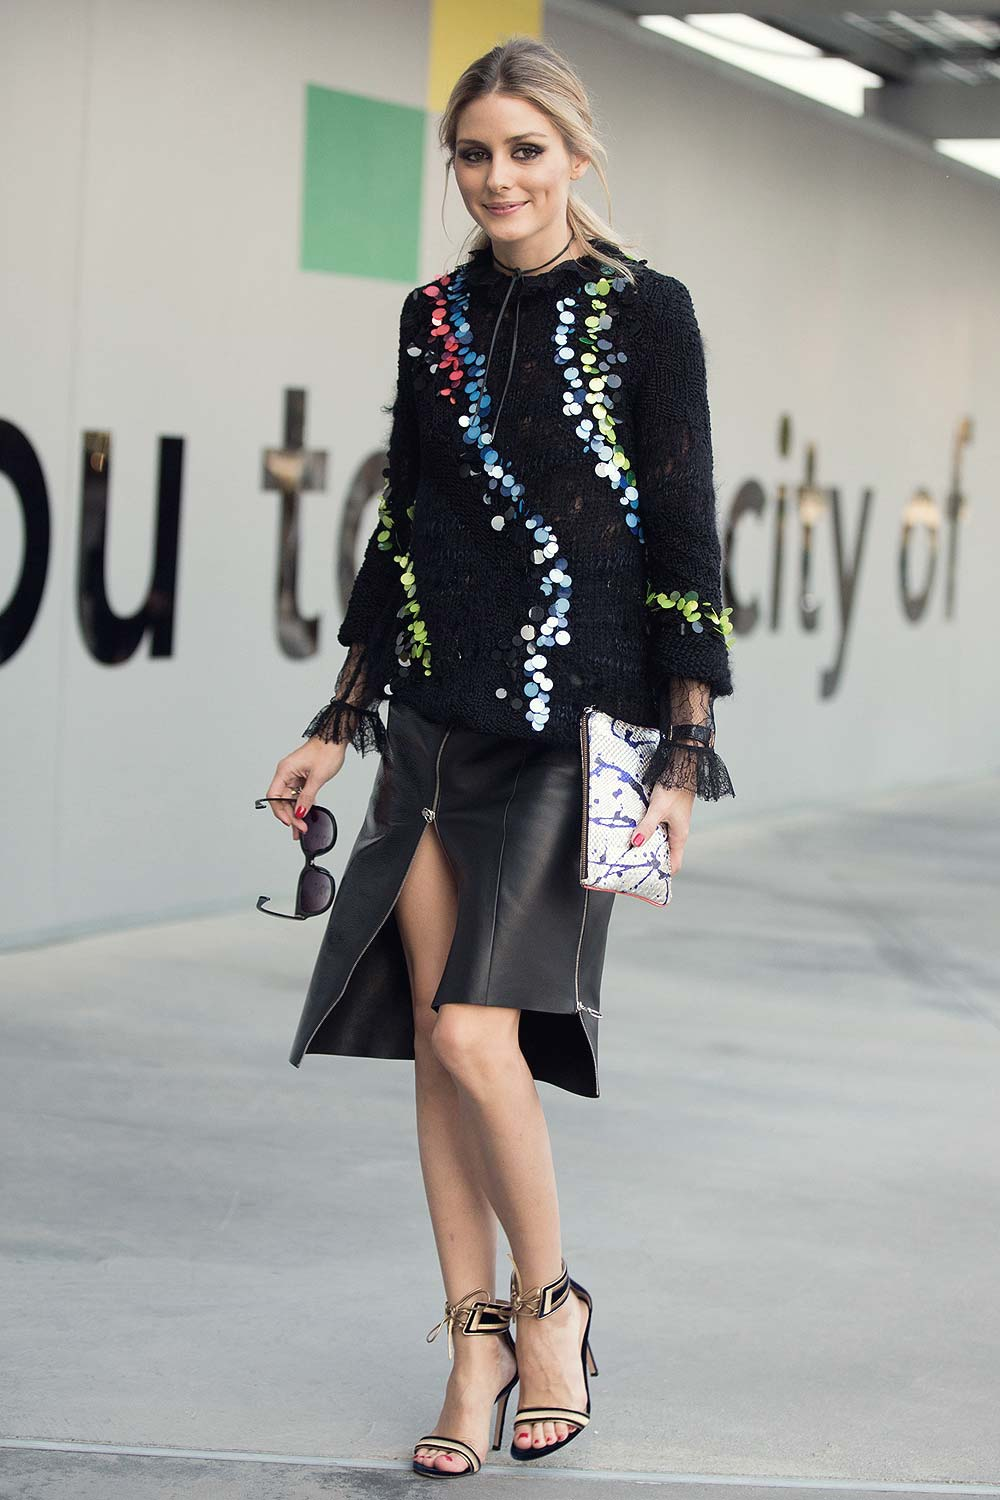 The Olivia Palermo Lookbook Olivia Palermo At Milan Fashion Week V